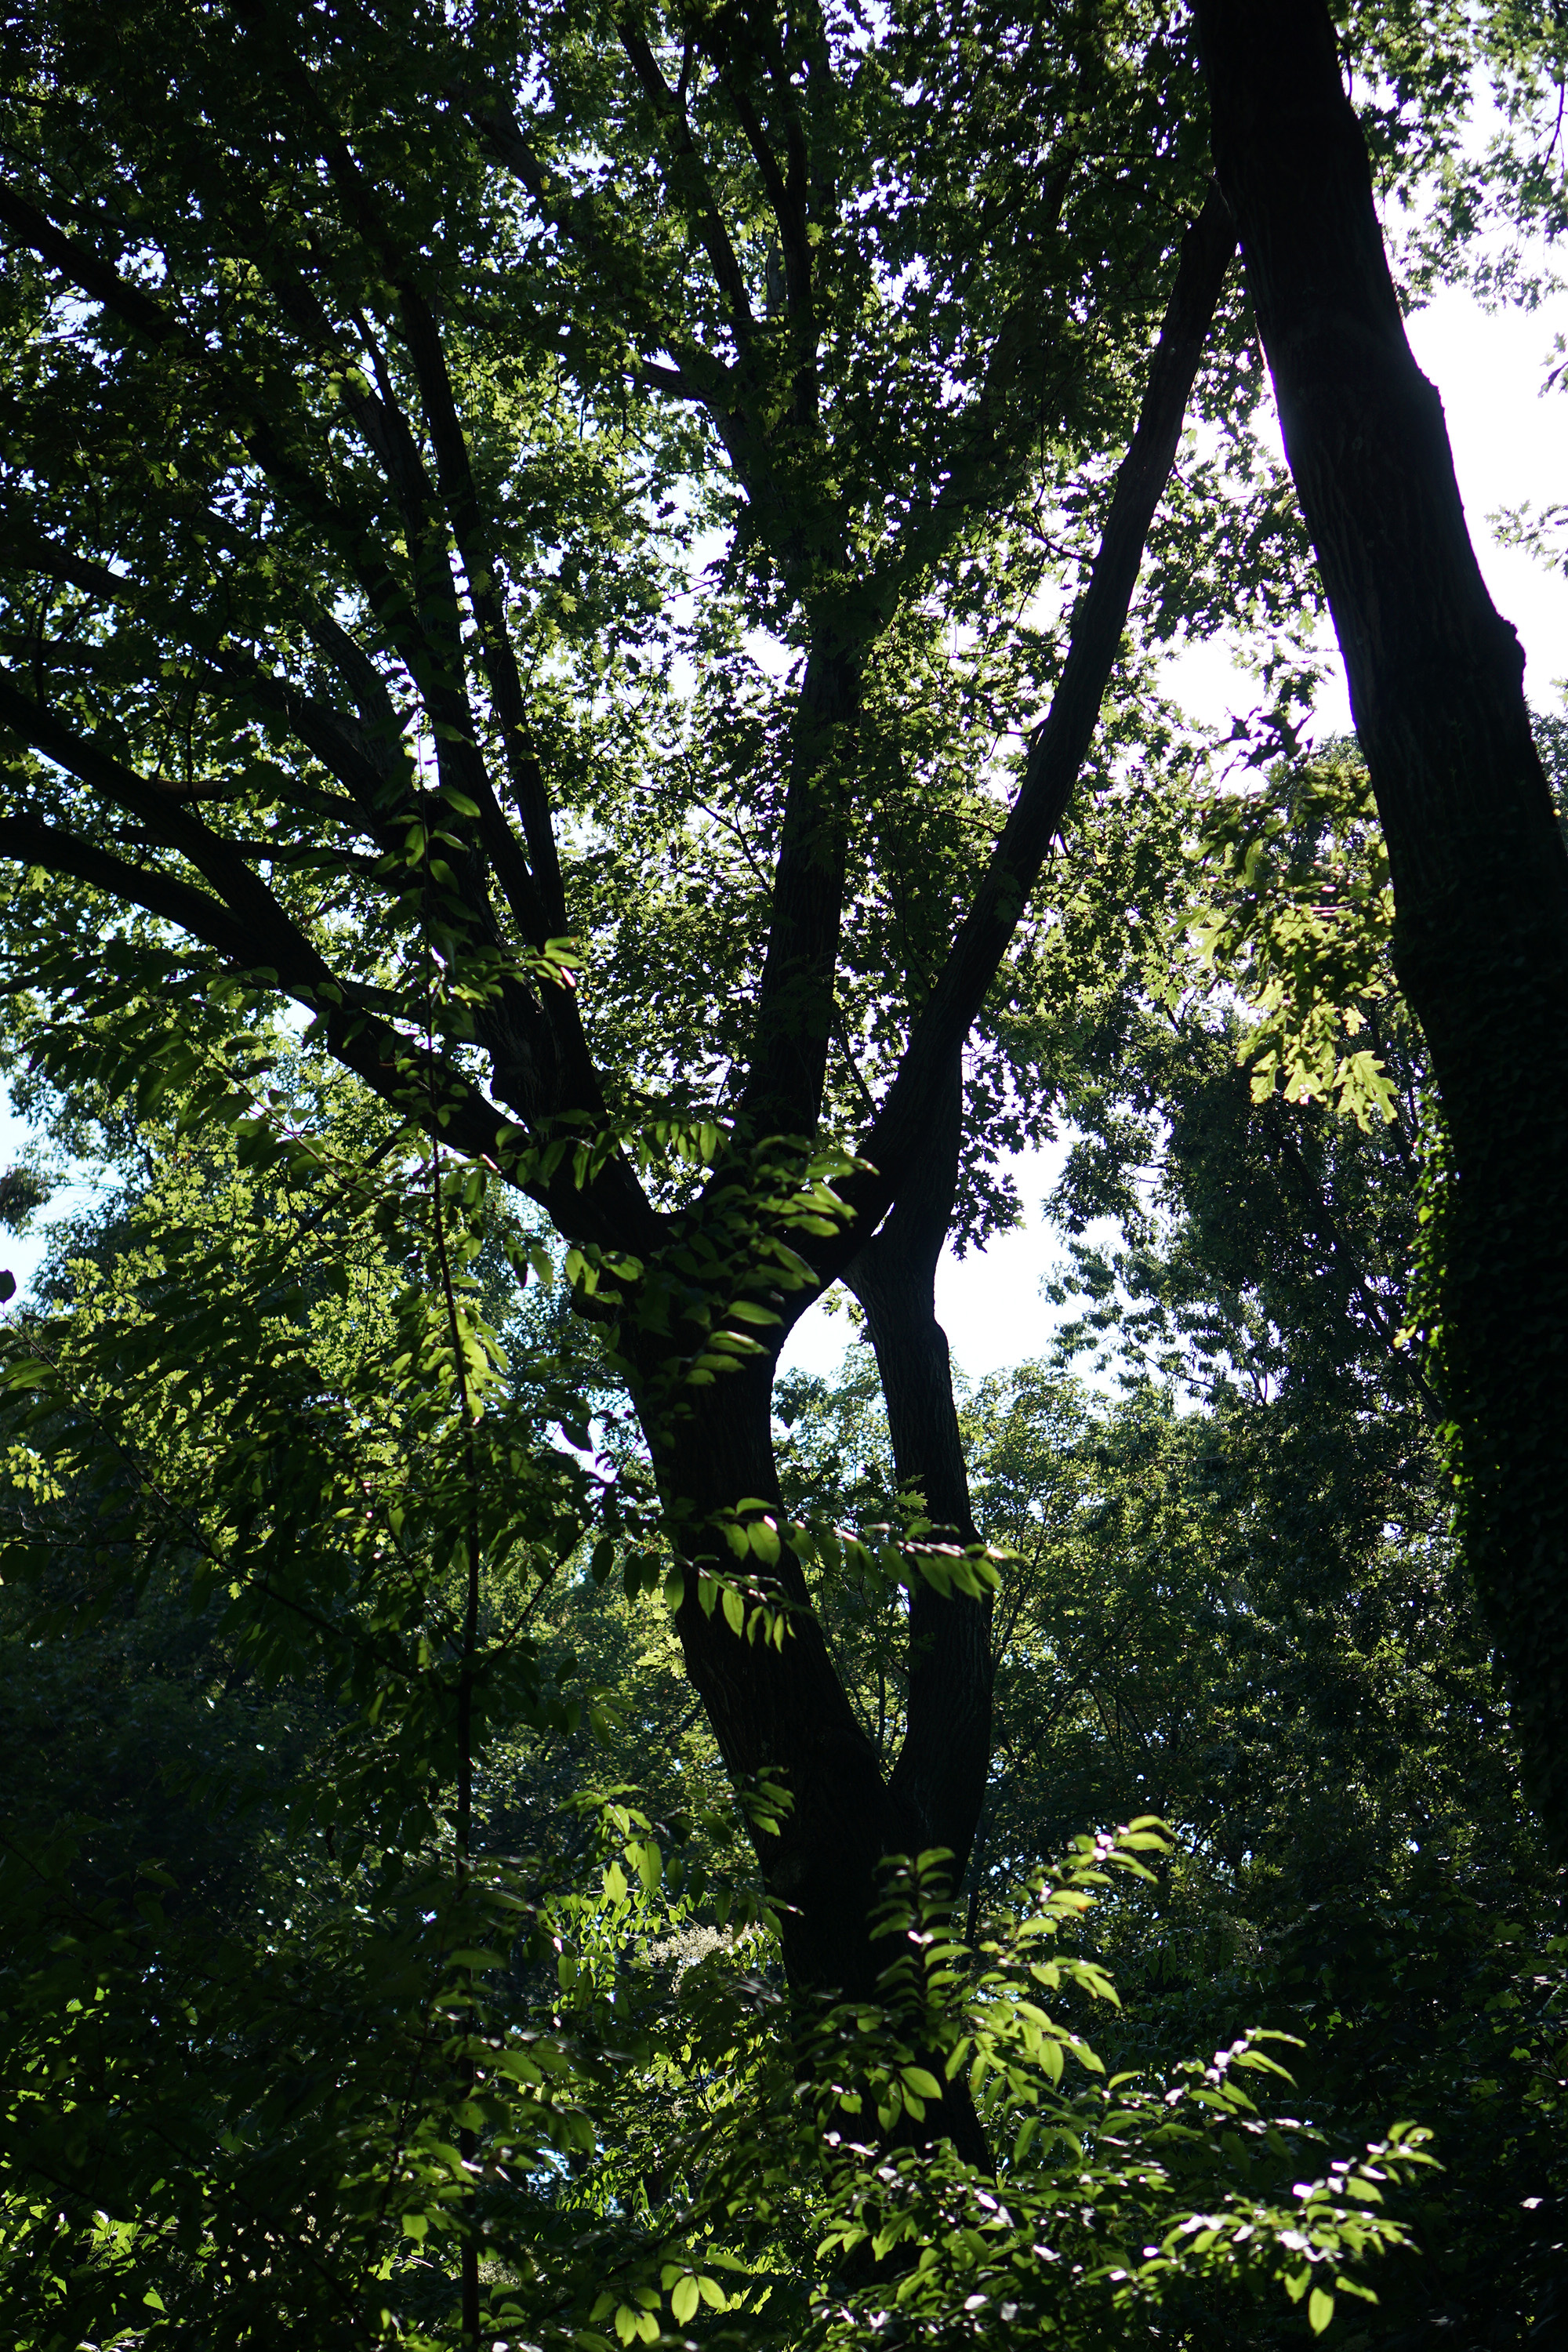 Fort Tryon Park, Washington Heights, New York City / Darker than Green